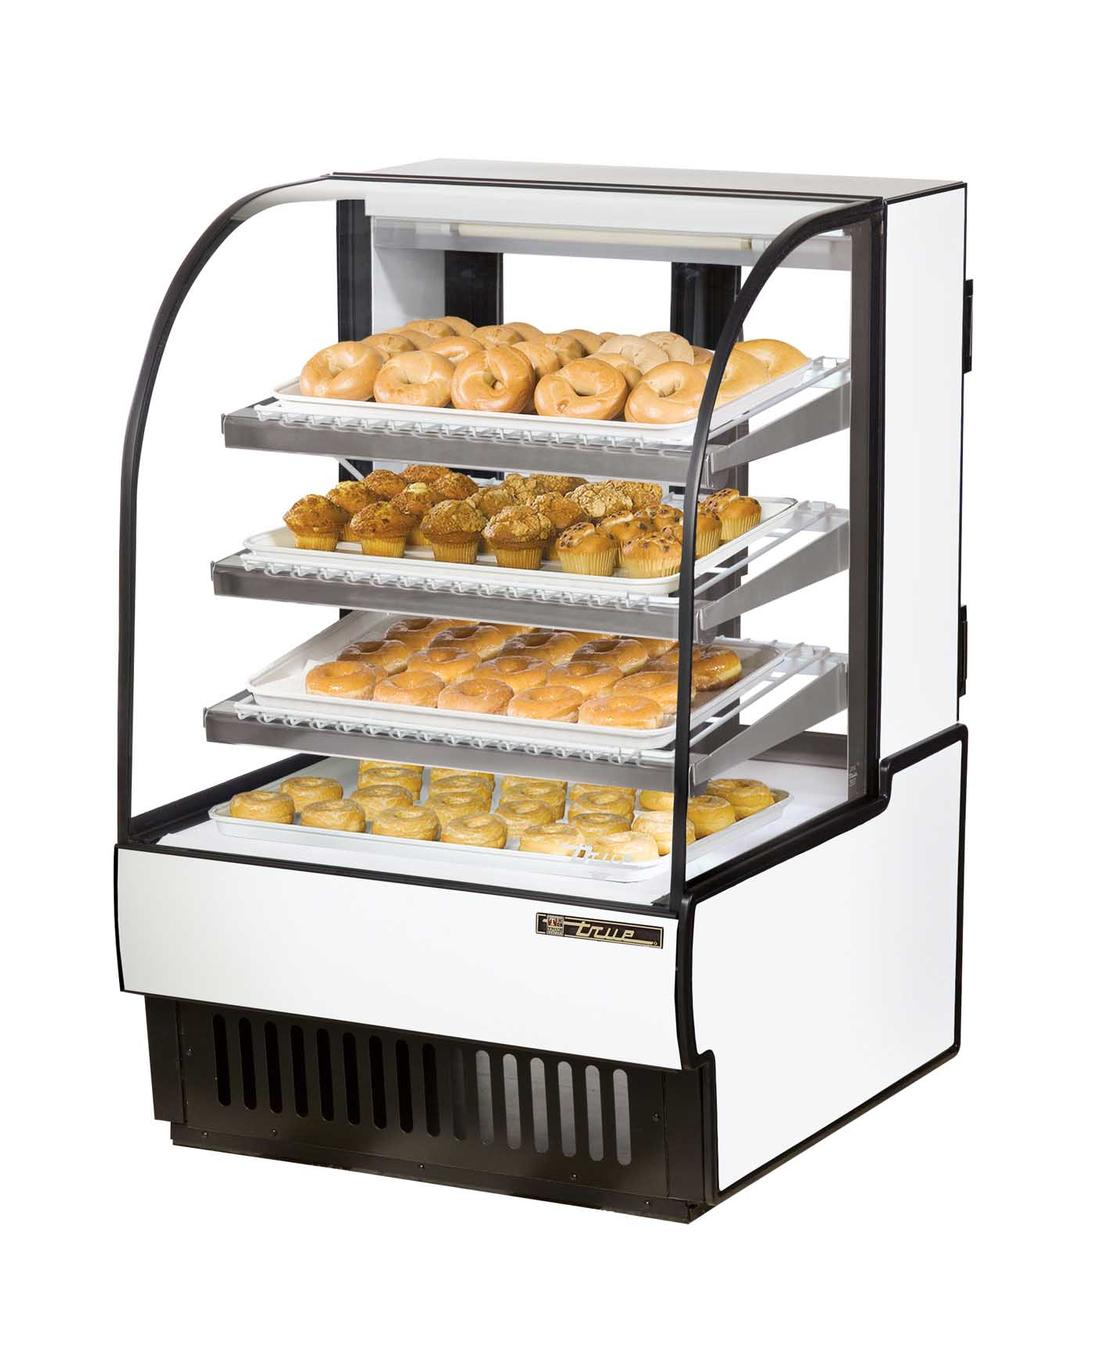 True Tcgd 31 31in Curved Glass Non Refrigerated Dry Bakery